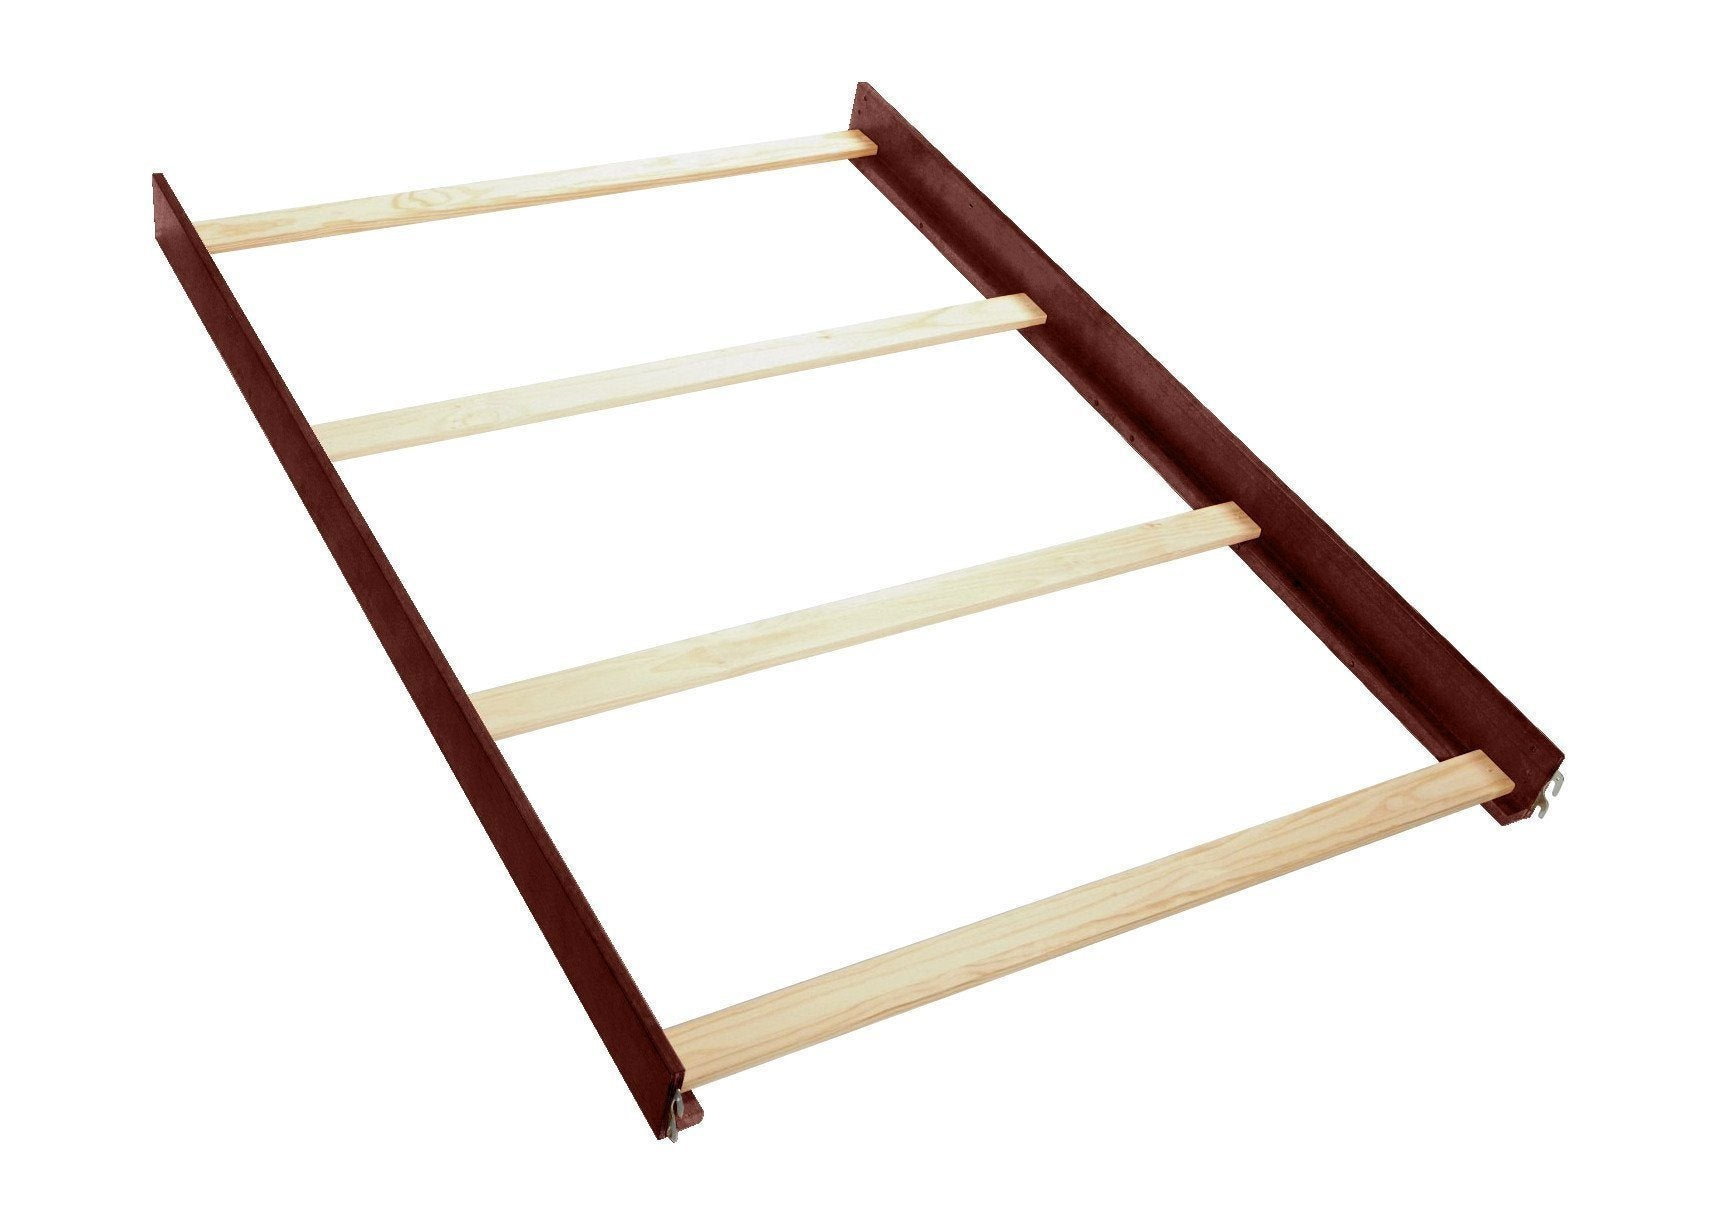 Simmons Kids Autumn Berry (608) Wood Bed Rails (180080) ddd1ddd